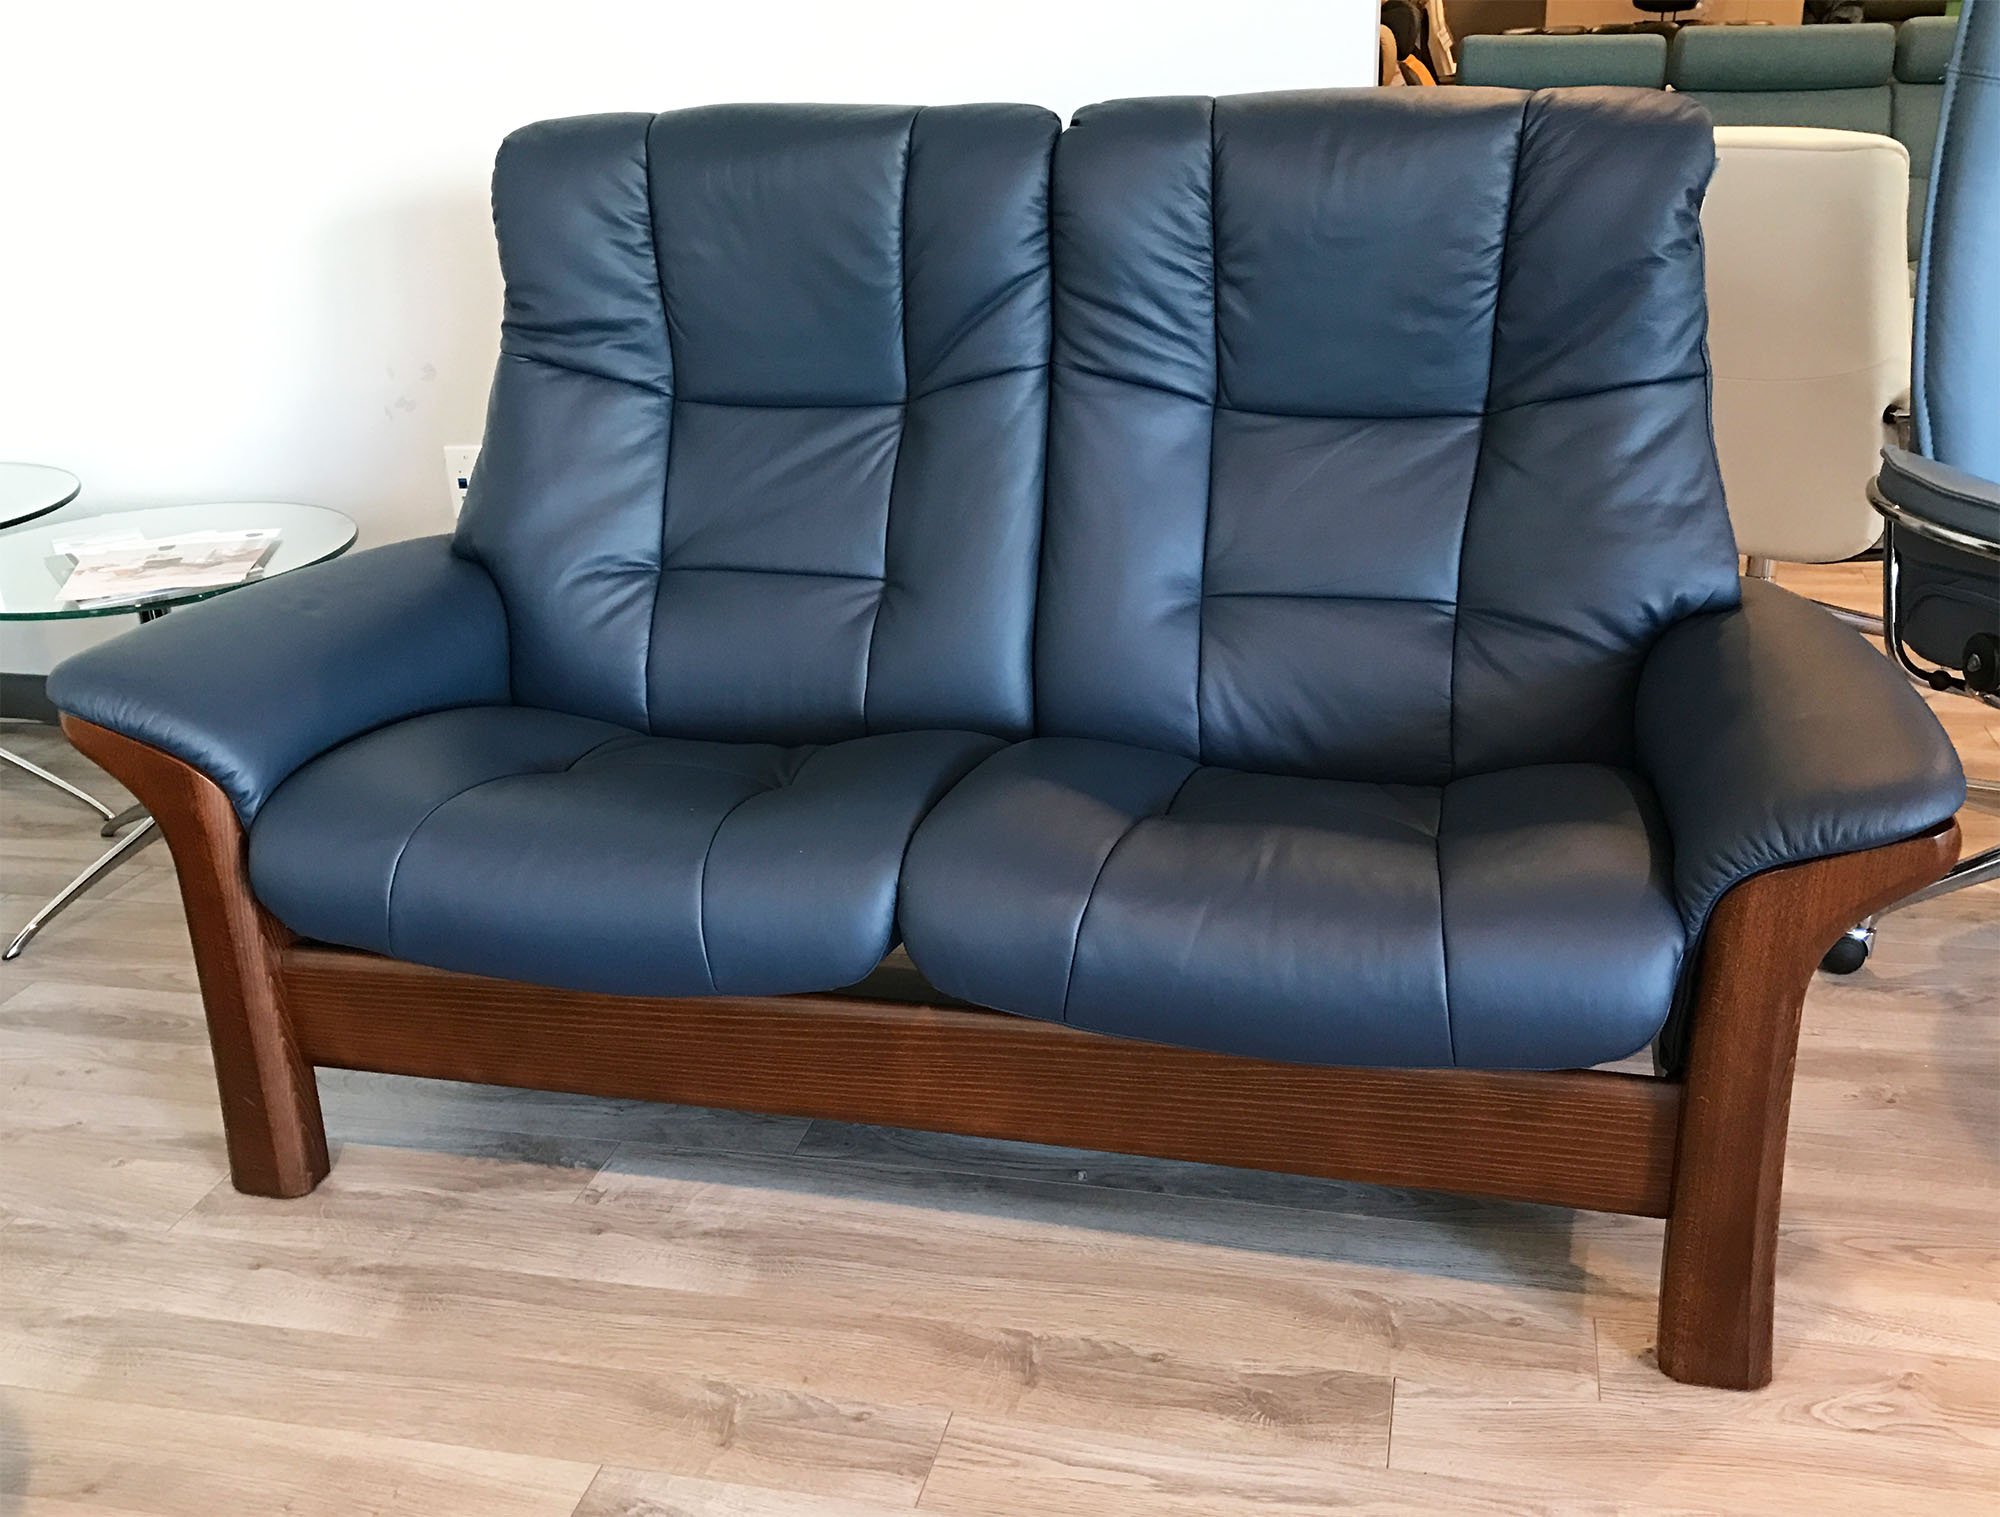 Stressless Buckingham 2 Seat High Back Loveseat Paloma Oxford Blue Leather Brown Walnut Wood Base By Ekornes